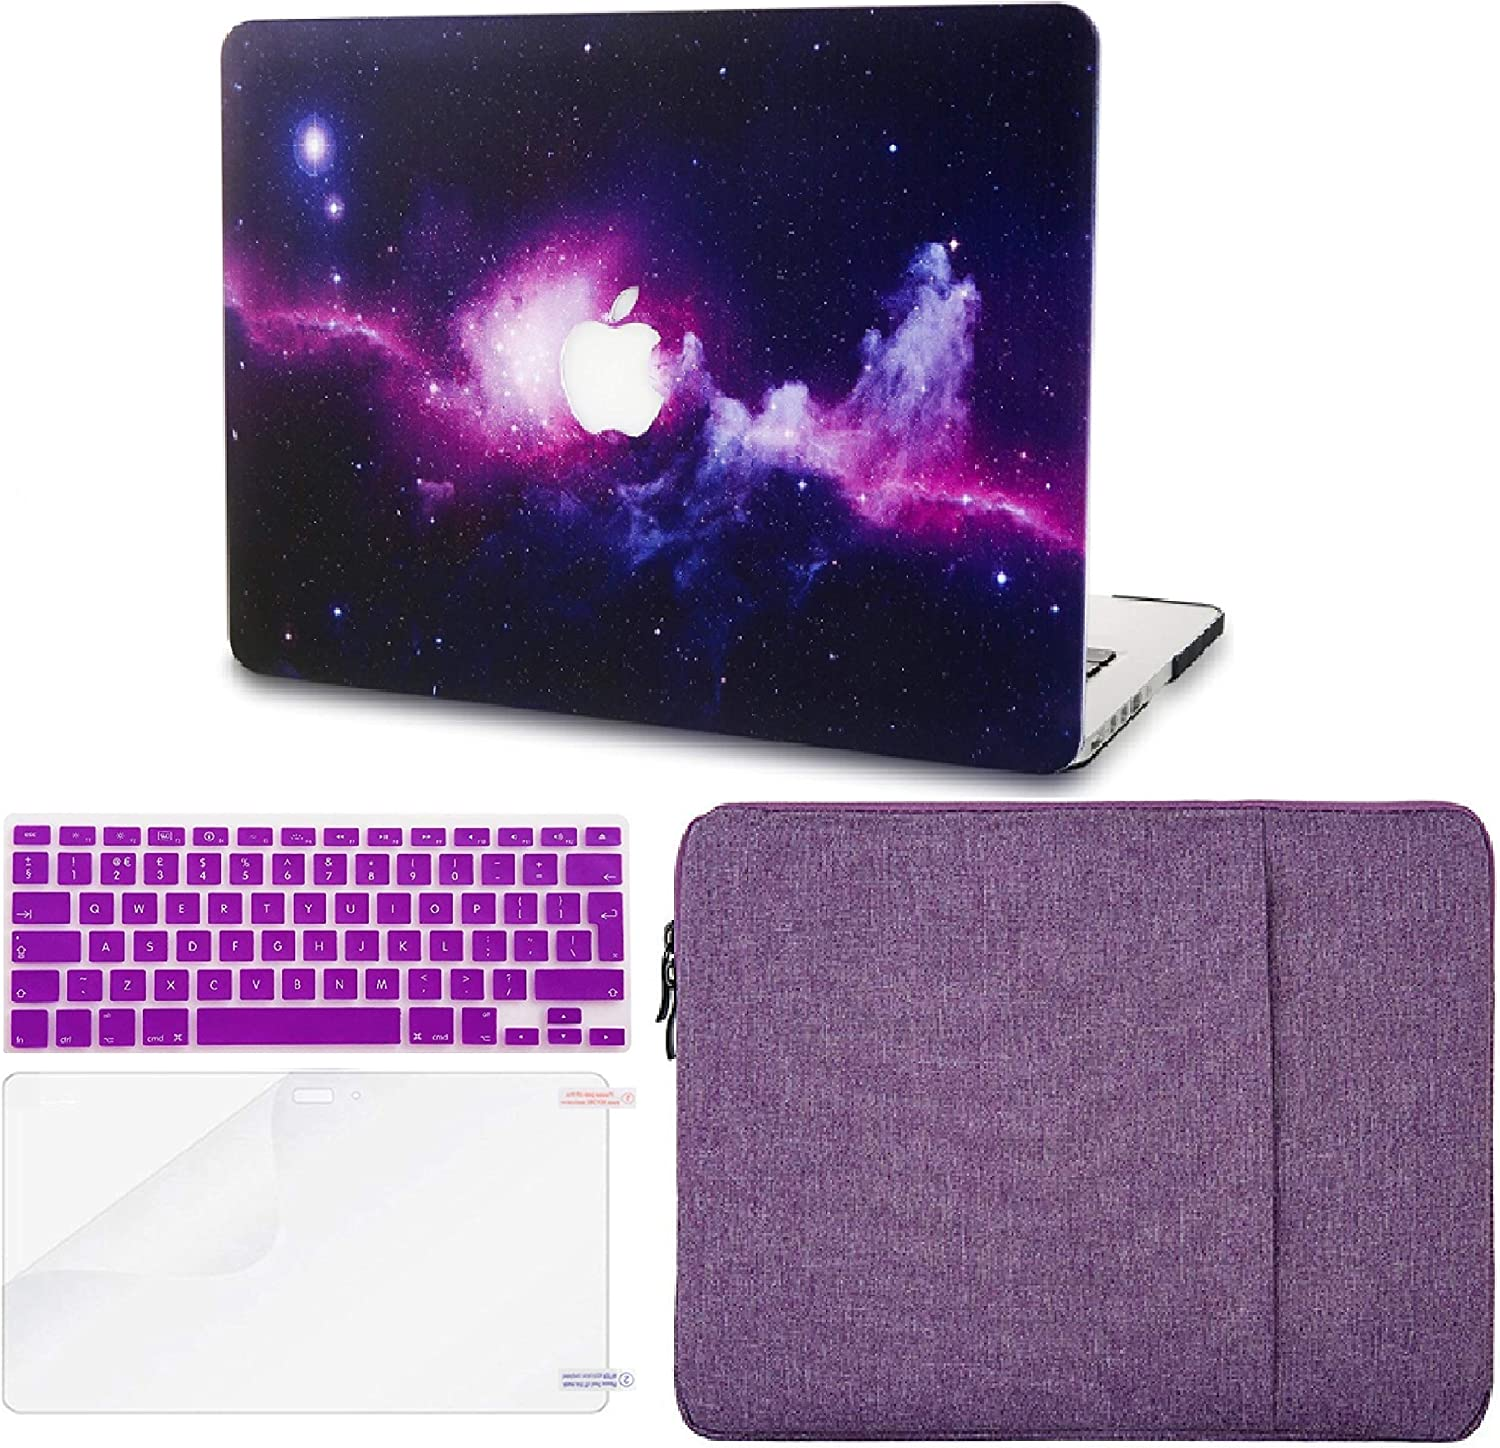 "KECC Laptop Case for MacBook Air 13"" Retina (2020/2019/2018, Touch ID) w/Keyboard Cover + Sleeve + Screen Protector (4 in 1 Bundle) Plastic Hard Shell Case A1932 (Purple)"